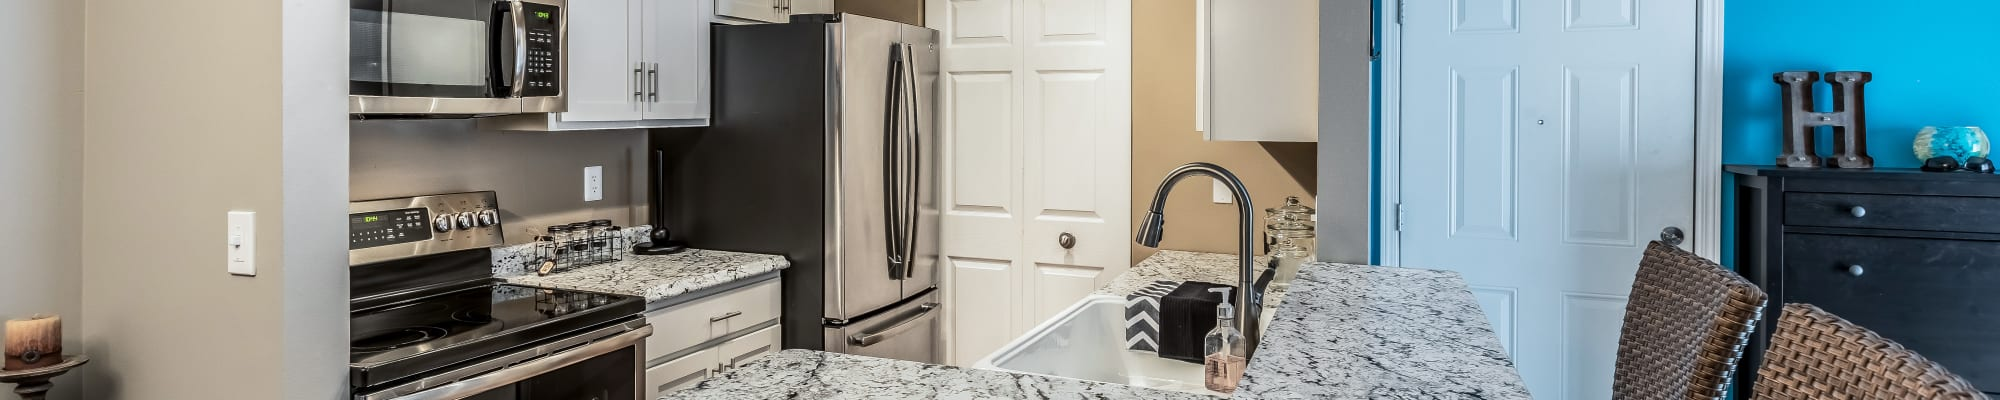 Amenities at Waters Edge Apartments in Lansing, Michigan